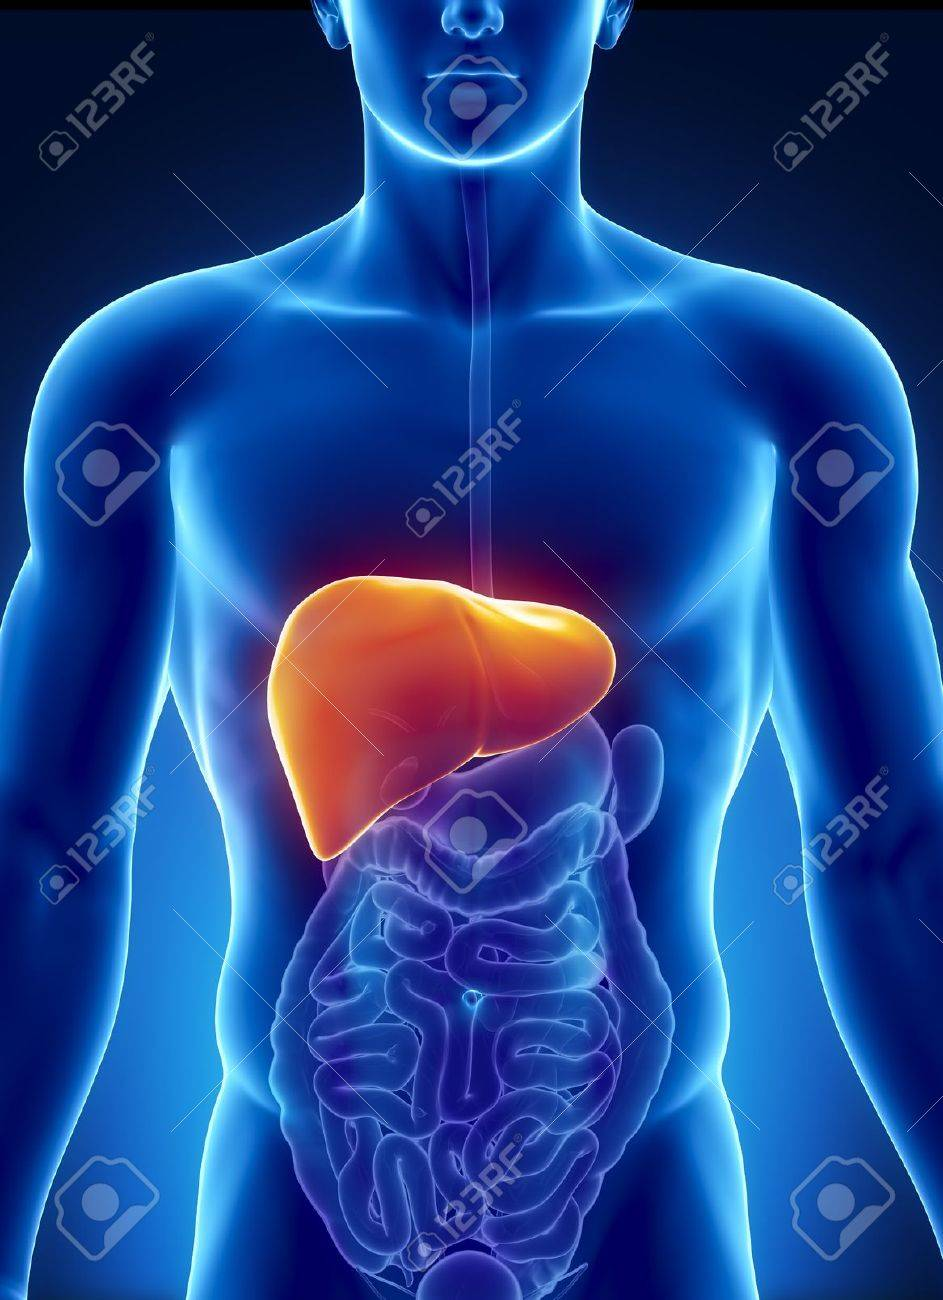 human liver stock photos images. royalty free human liver images, Human body